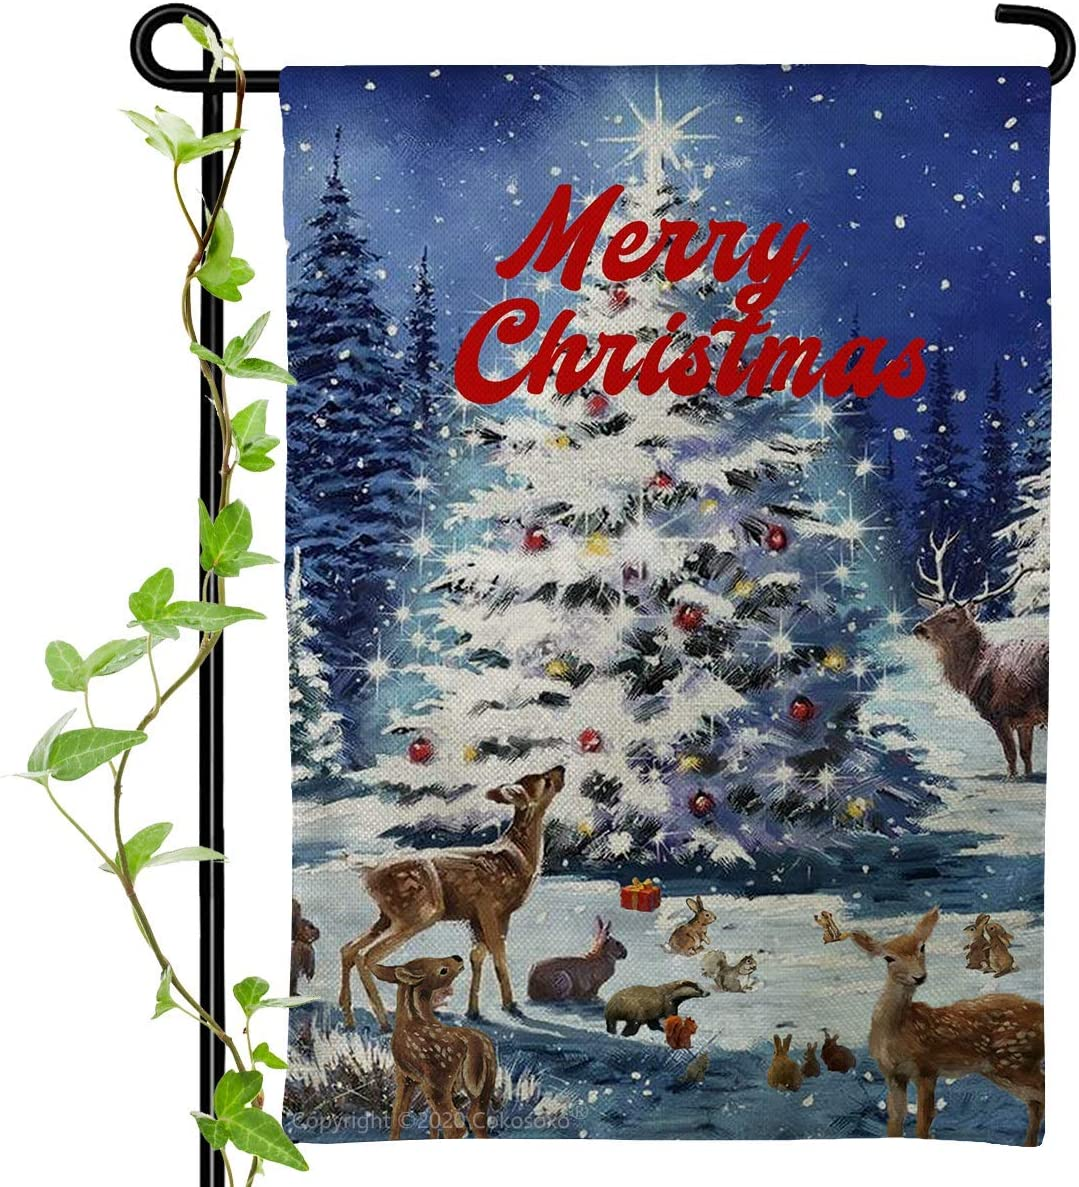 Merry Christmas Garden Flag Bonsai Tree Elk Deer Rabbit Most Animals House Banner Winter Snowflakes Decorative Flag for Holiday Yard Home Outdoor Decor 12x18